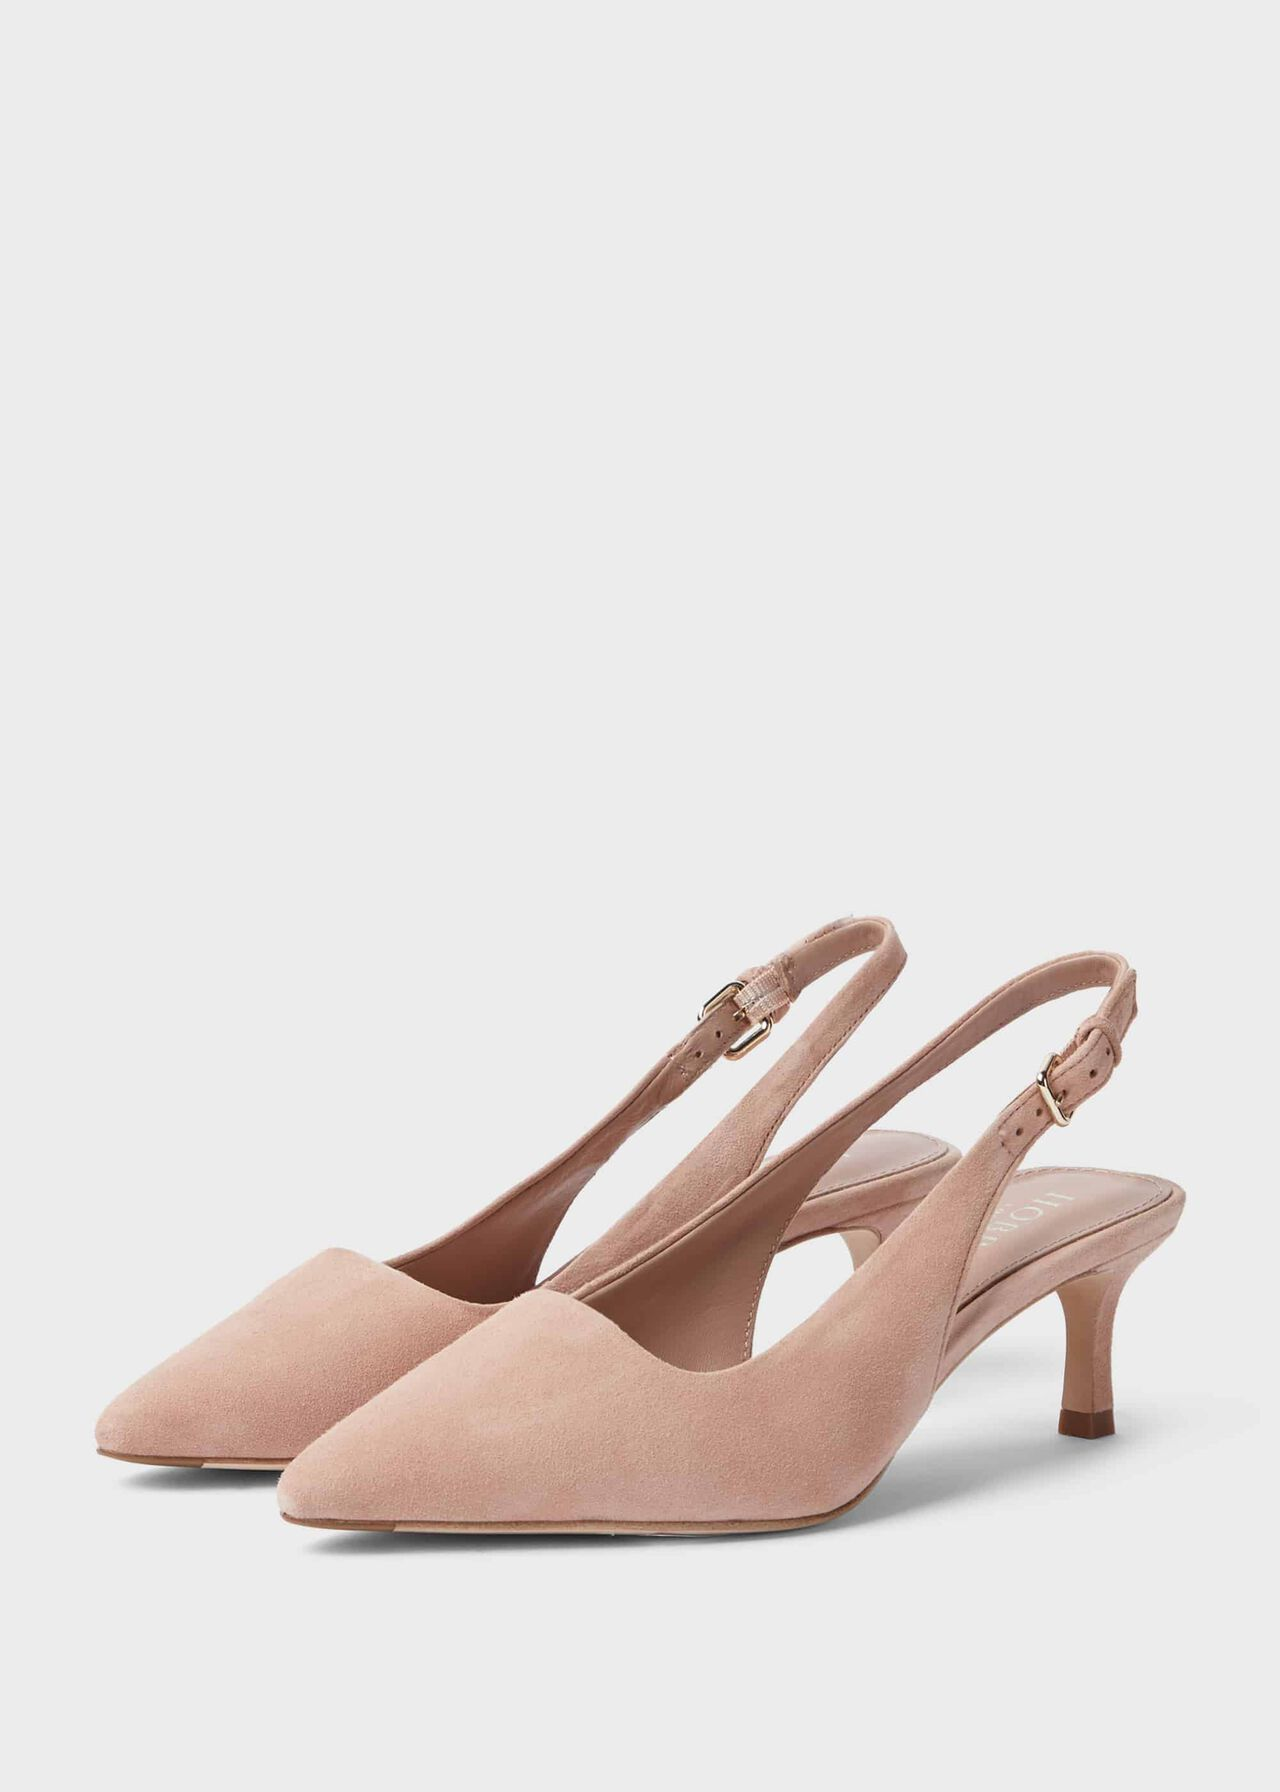 Kiera Suede Kitten Heel Slingbacks Court Shoes Fawn Pink